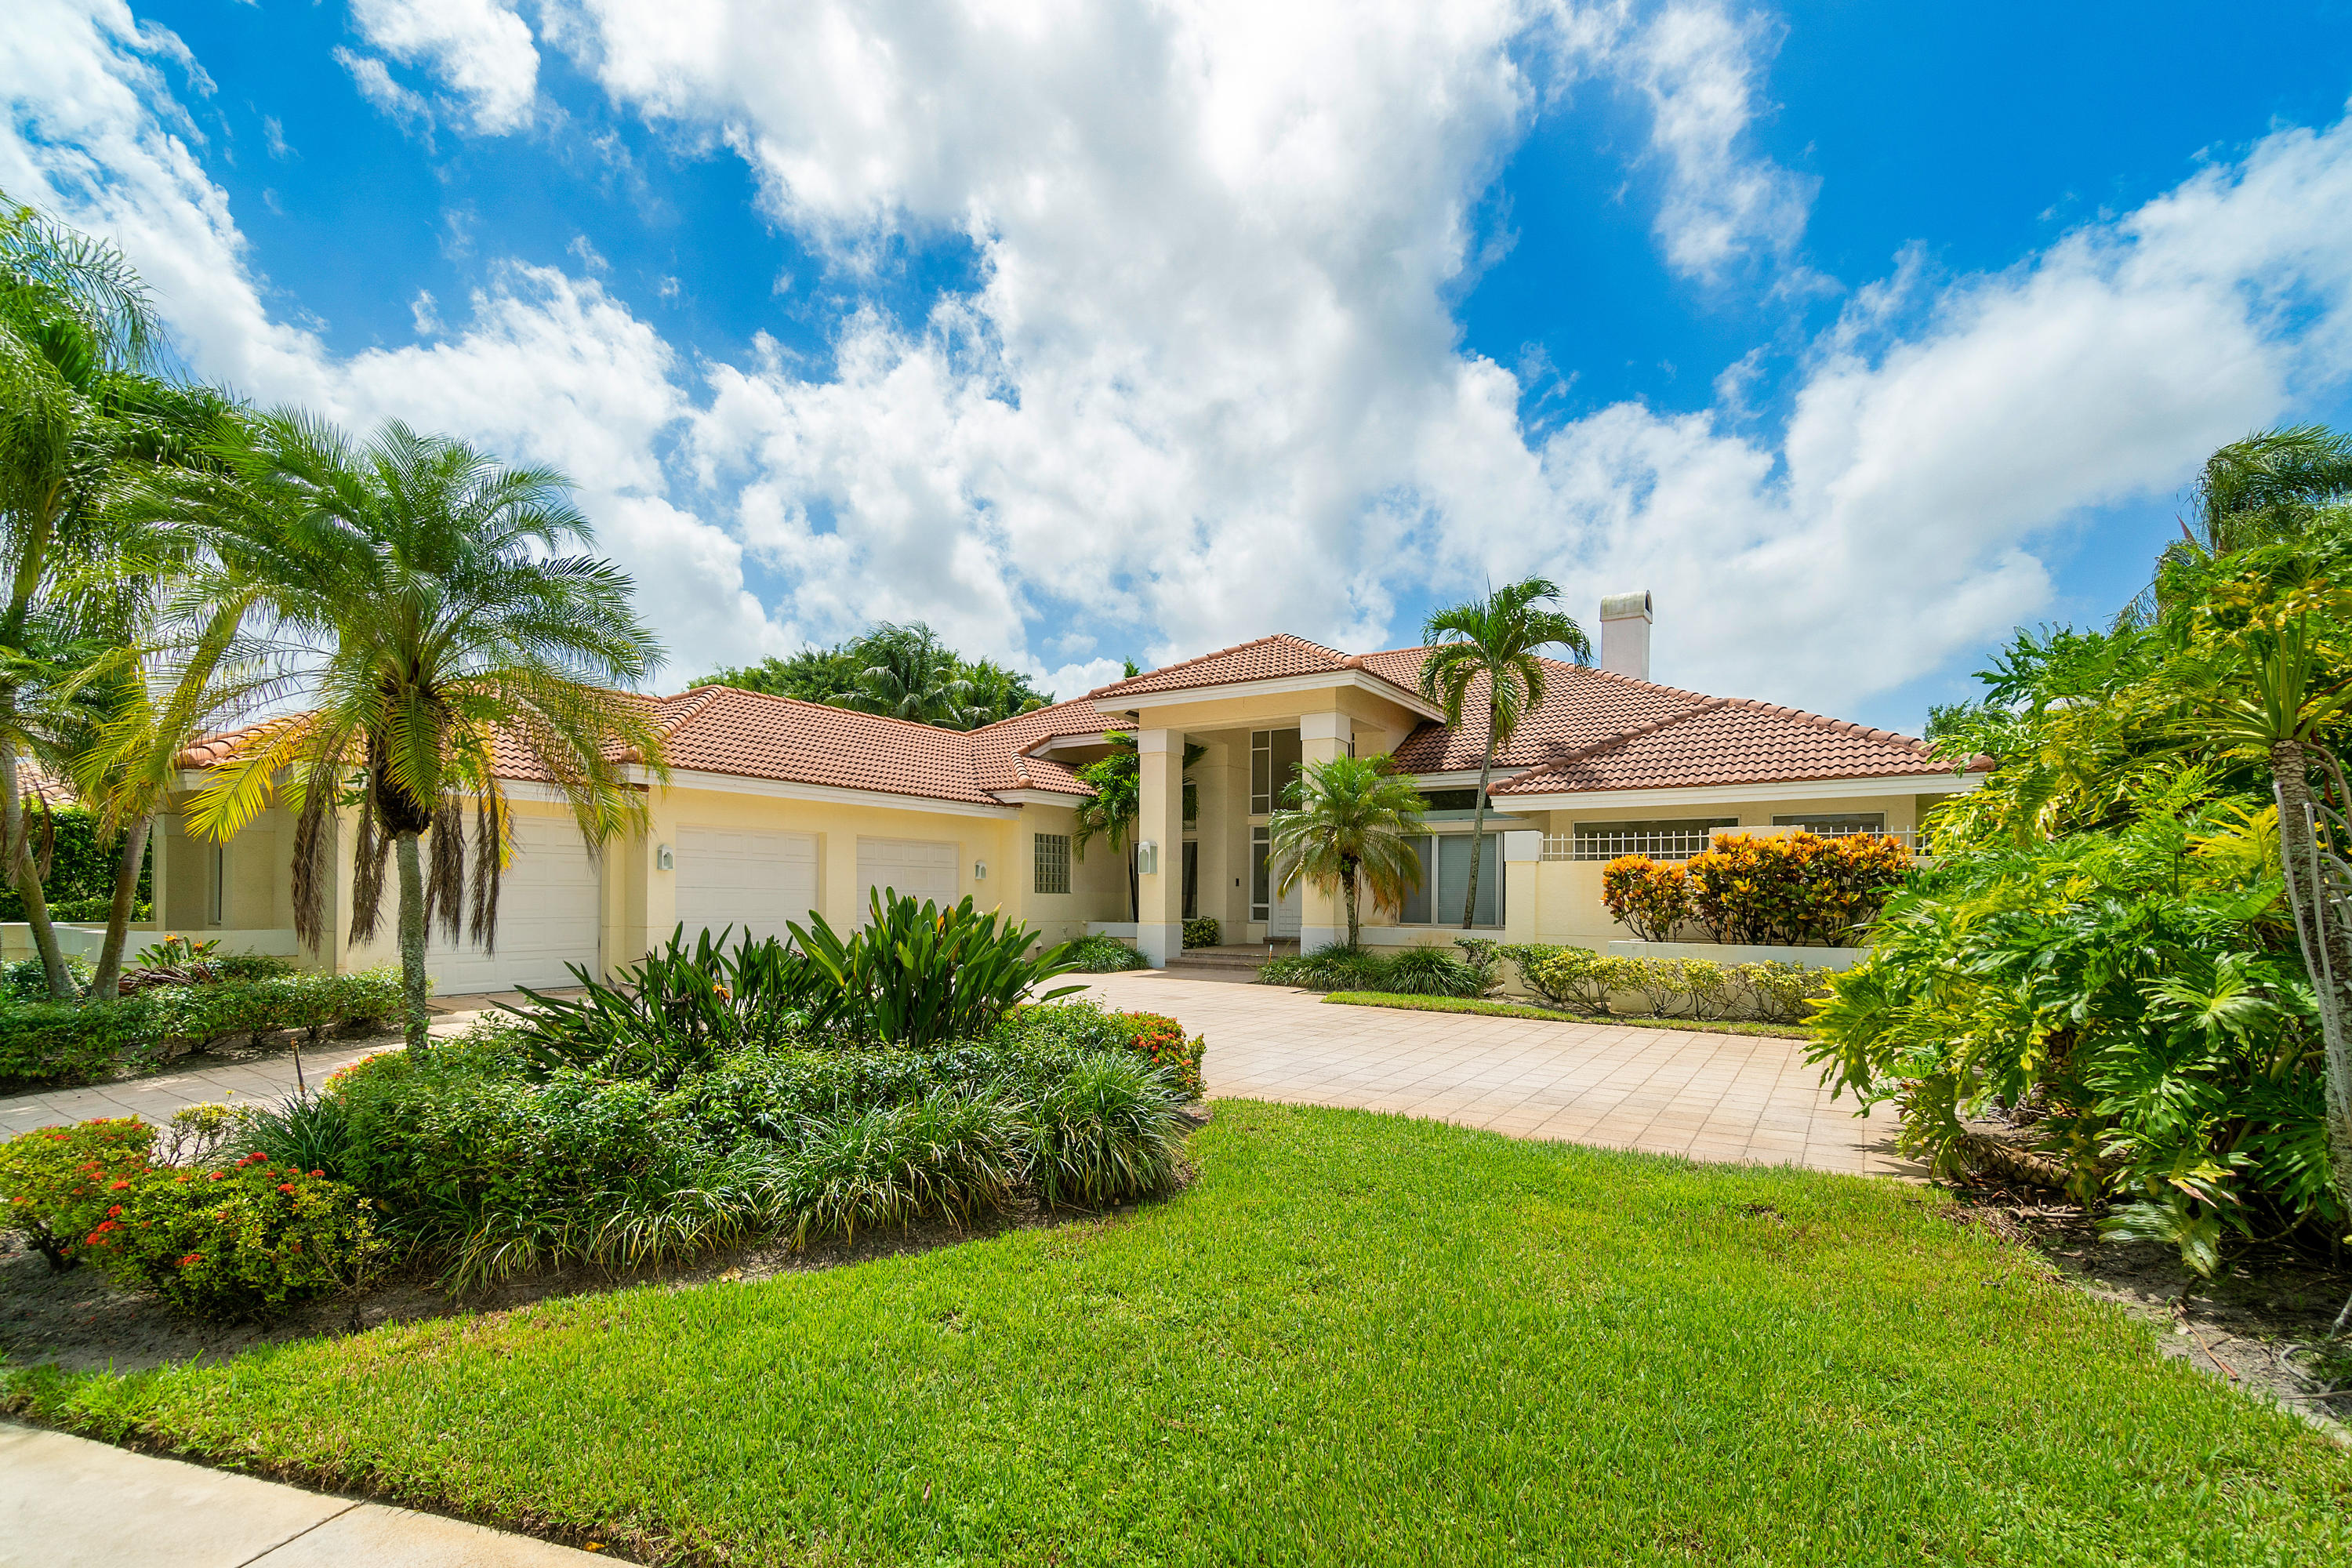 Details for 3912 52nd Street Nw, Boca Raton, FL 33496